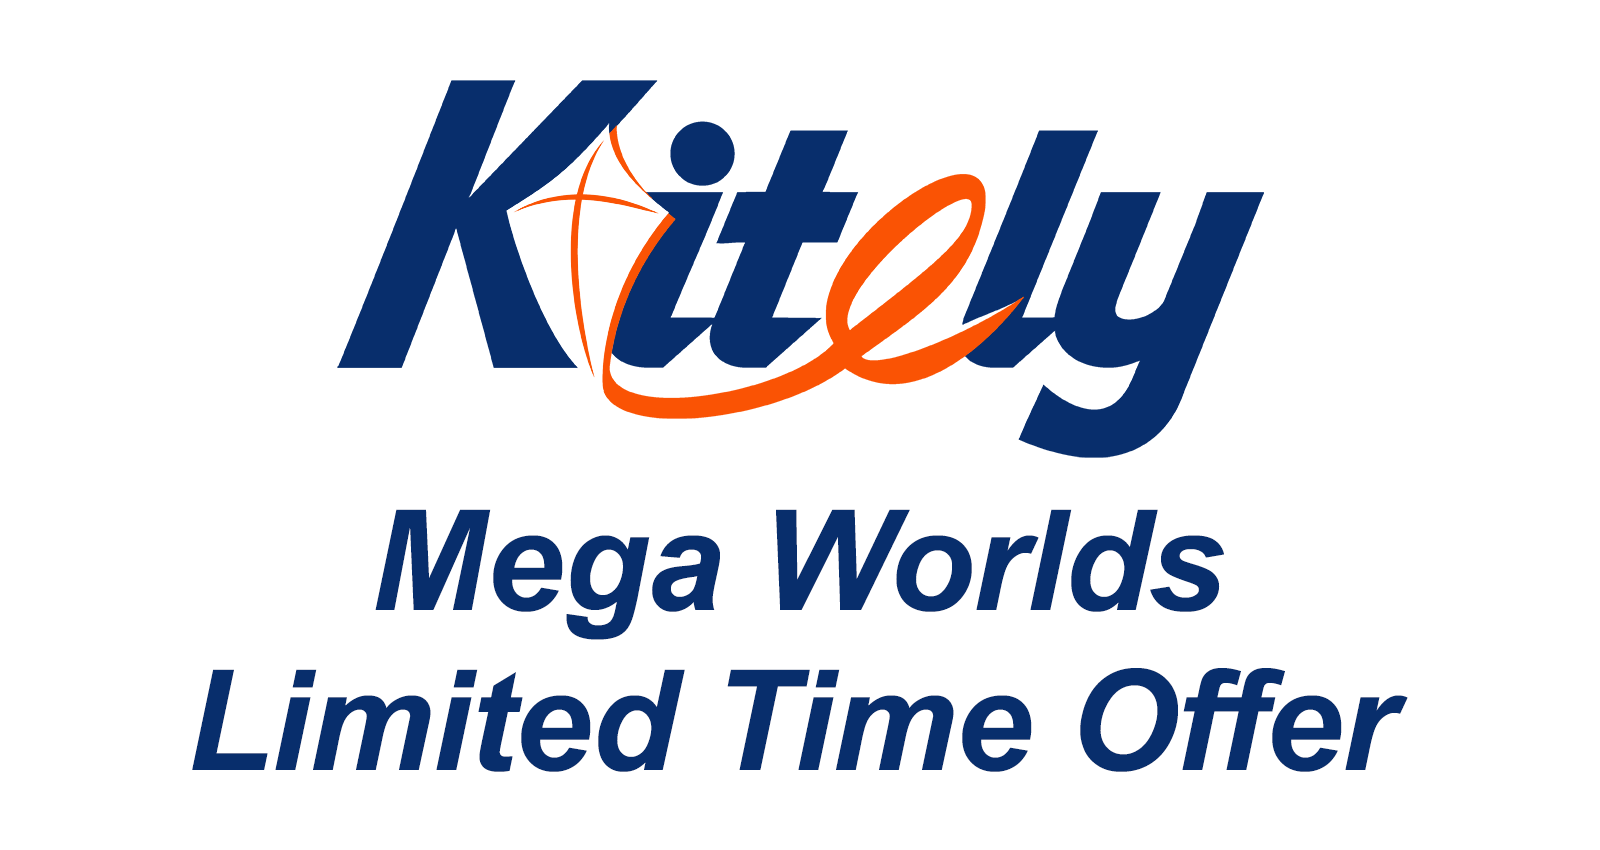 Limited Time Offer for Mega Worlds